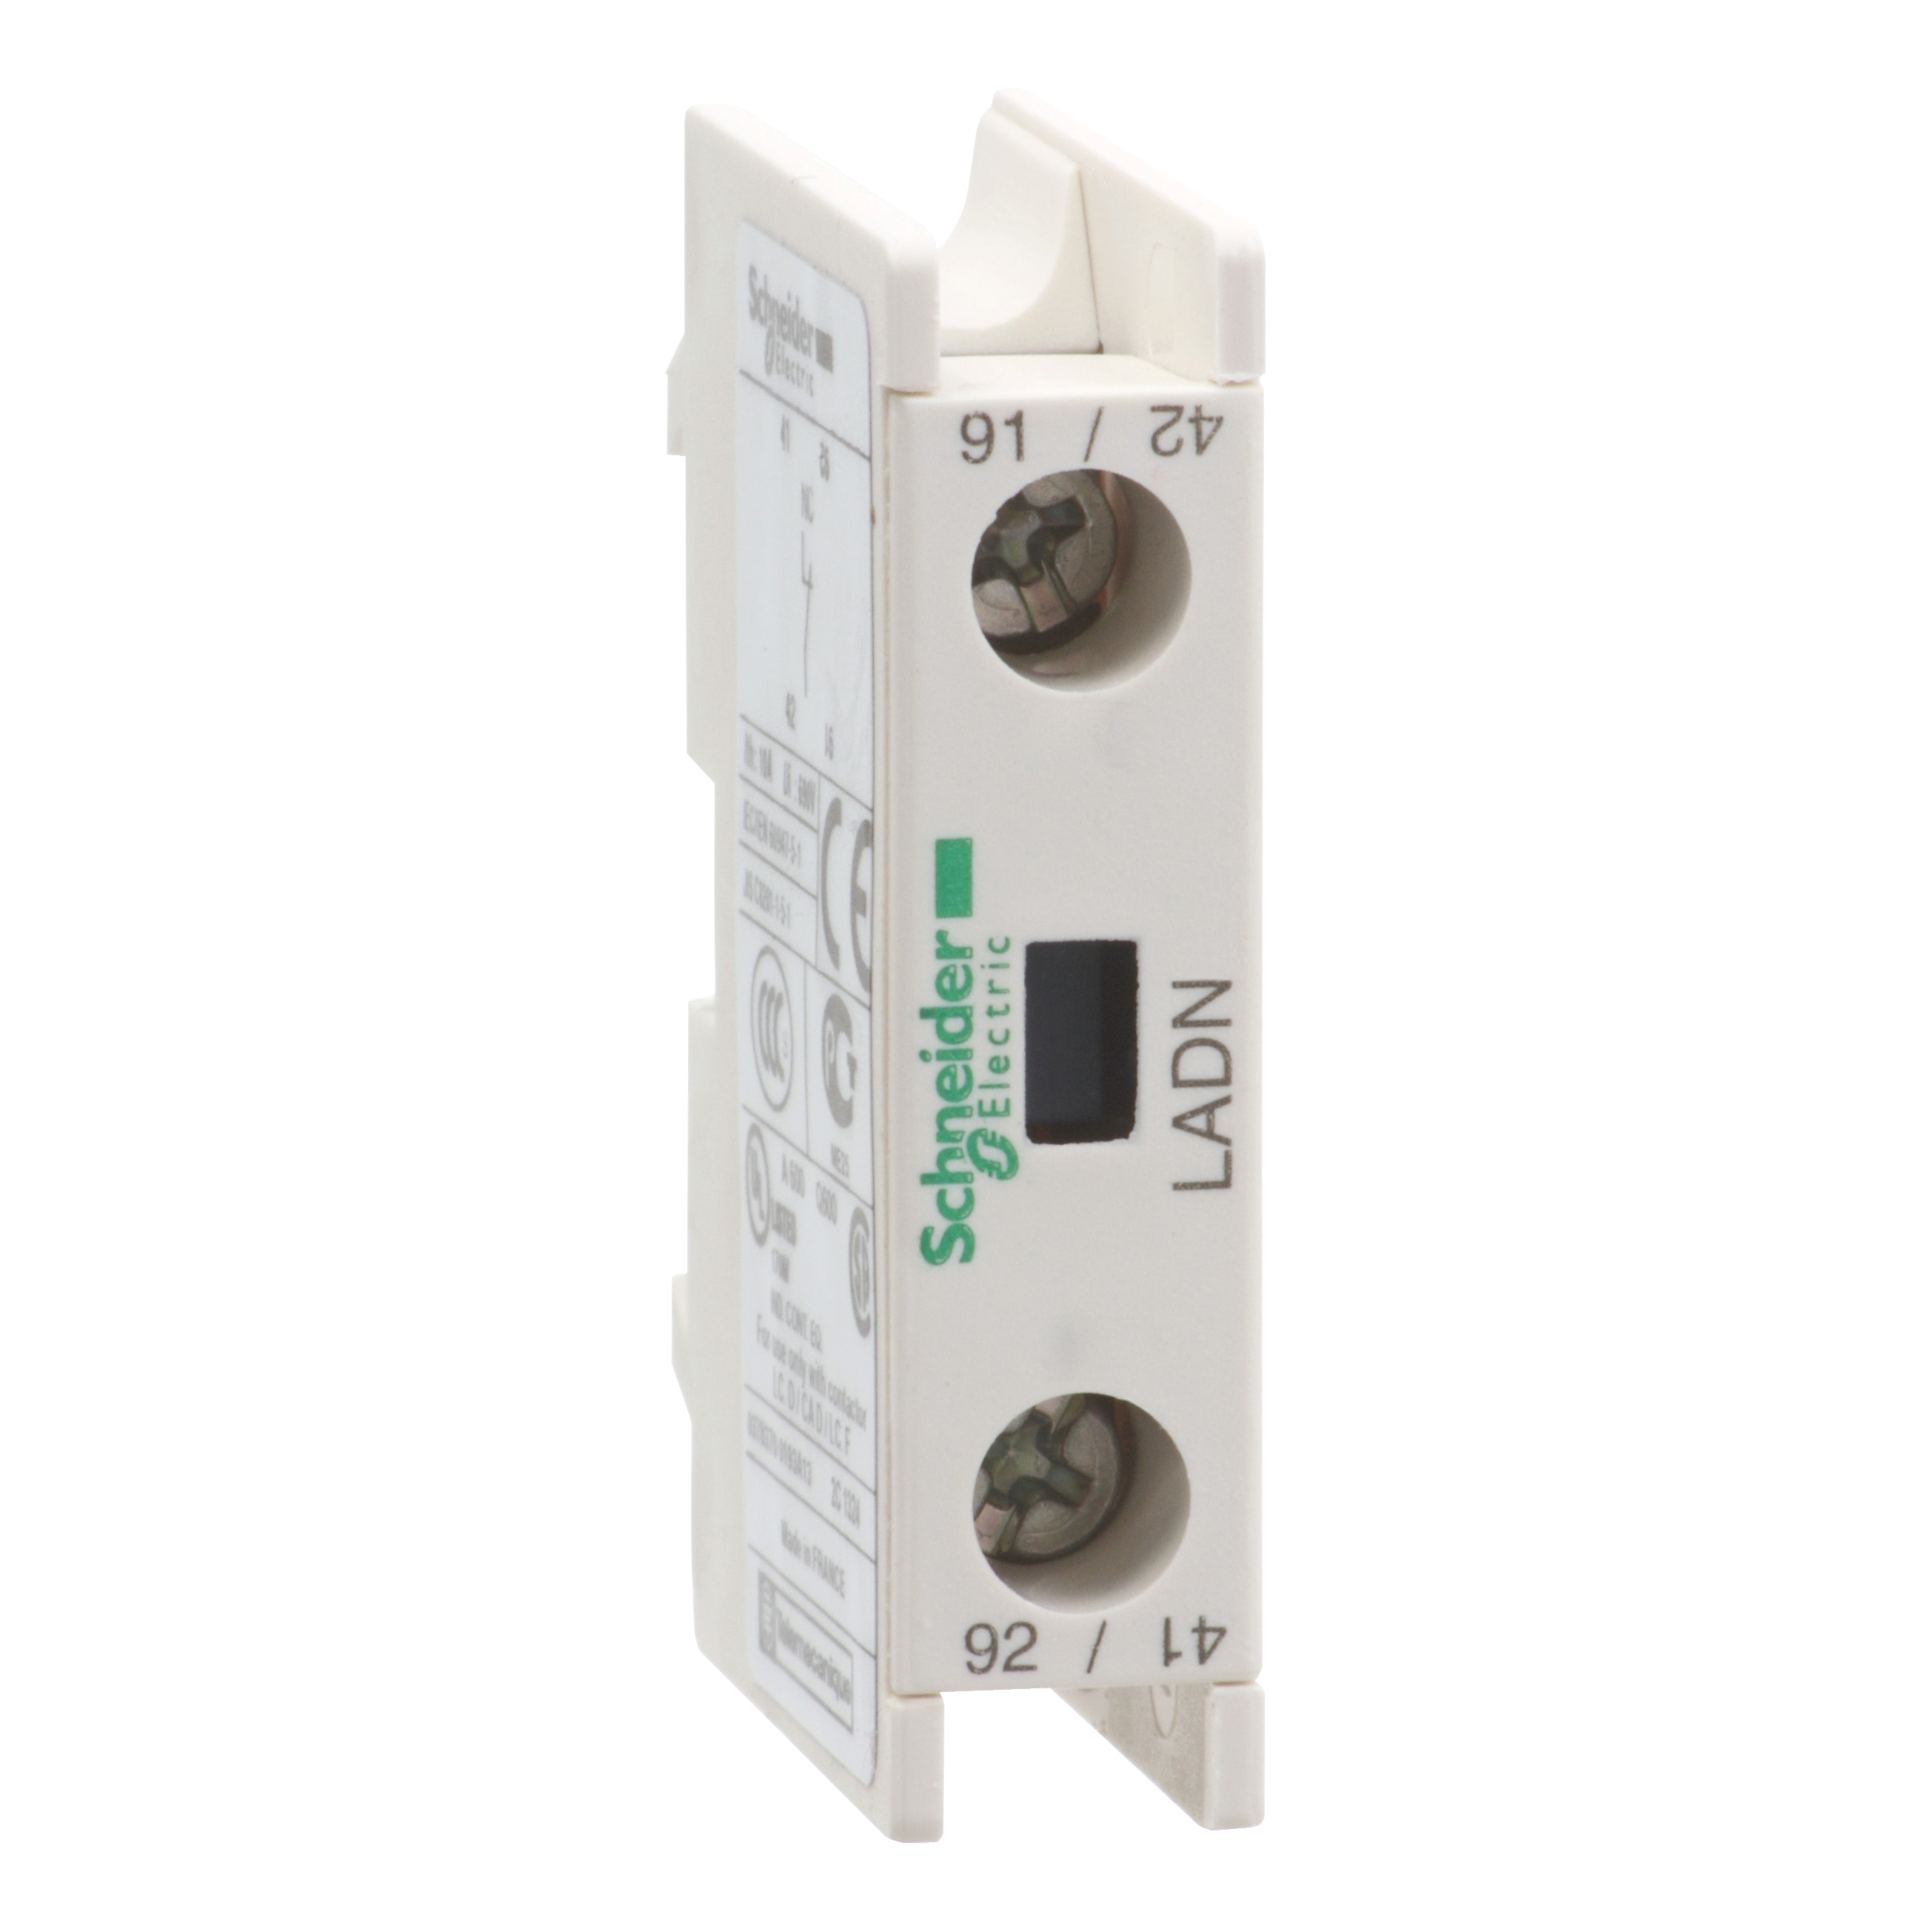 SCHNEIDER ELECTRIC Auxiliary contact block, TeSys D, 1NC, front mounting, screw clamp terminals